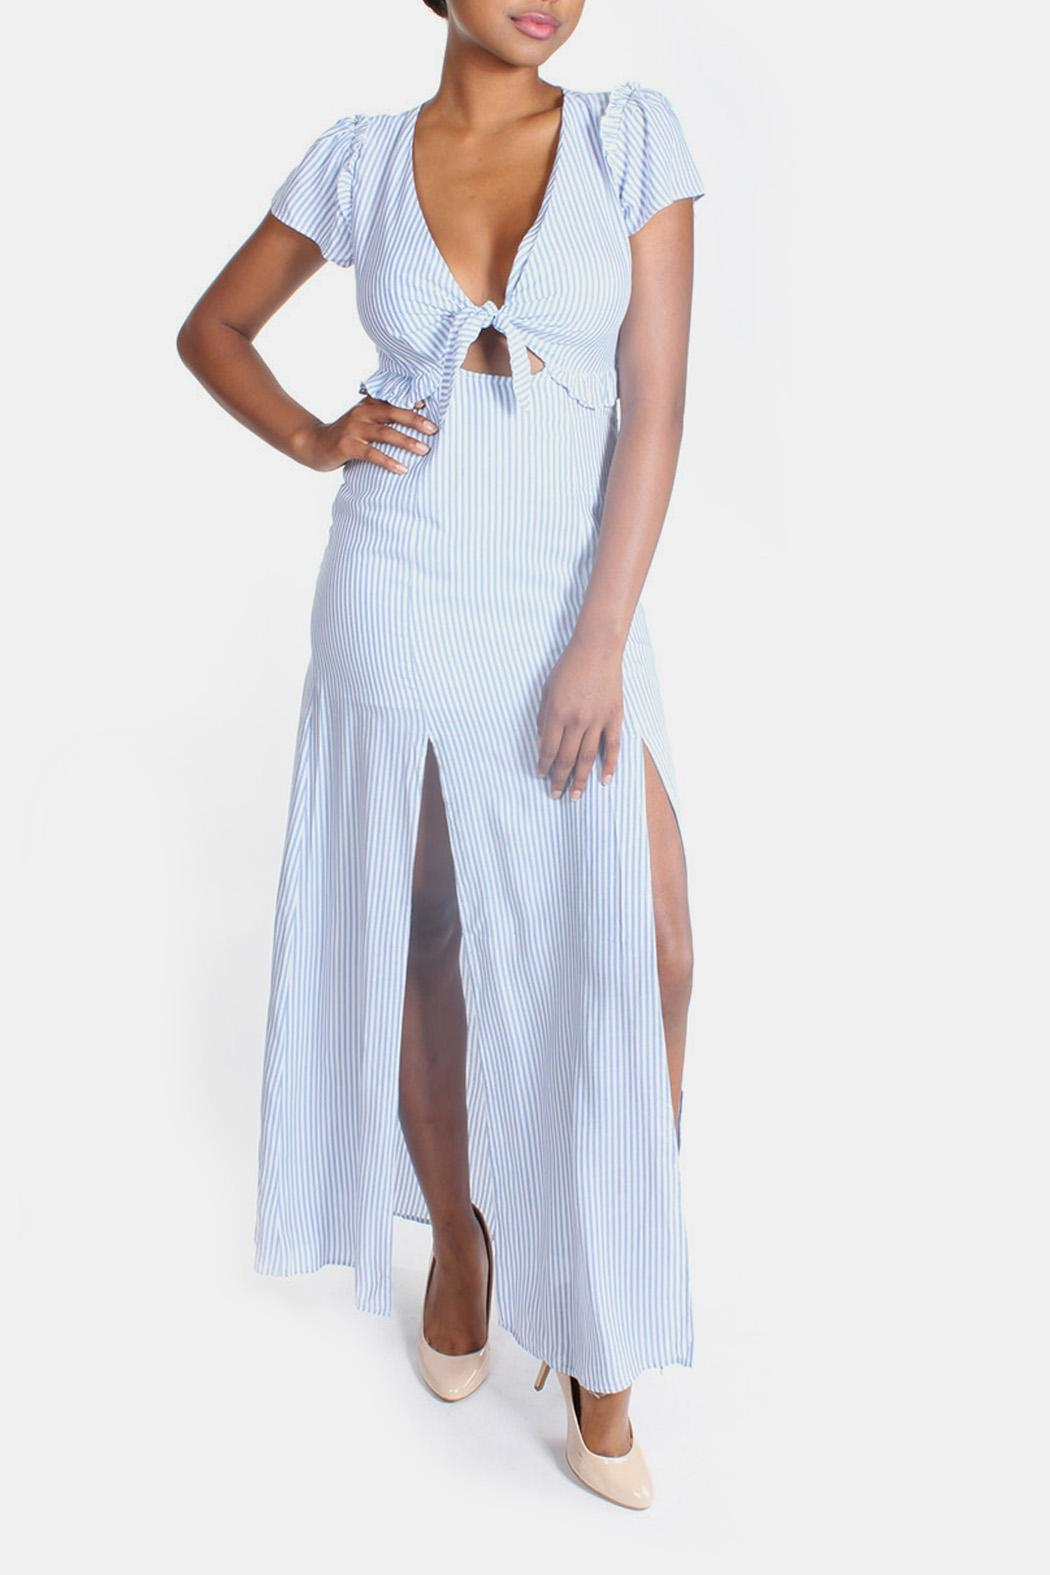 Cotton Candy LA Harbor Cut Out Maxi - Main Image